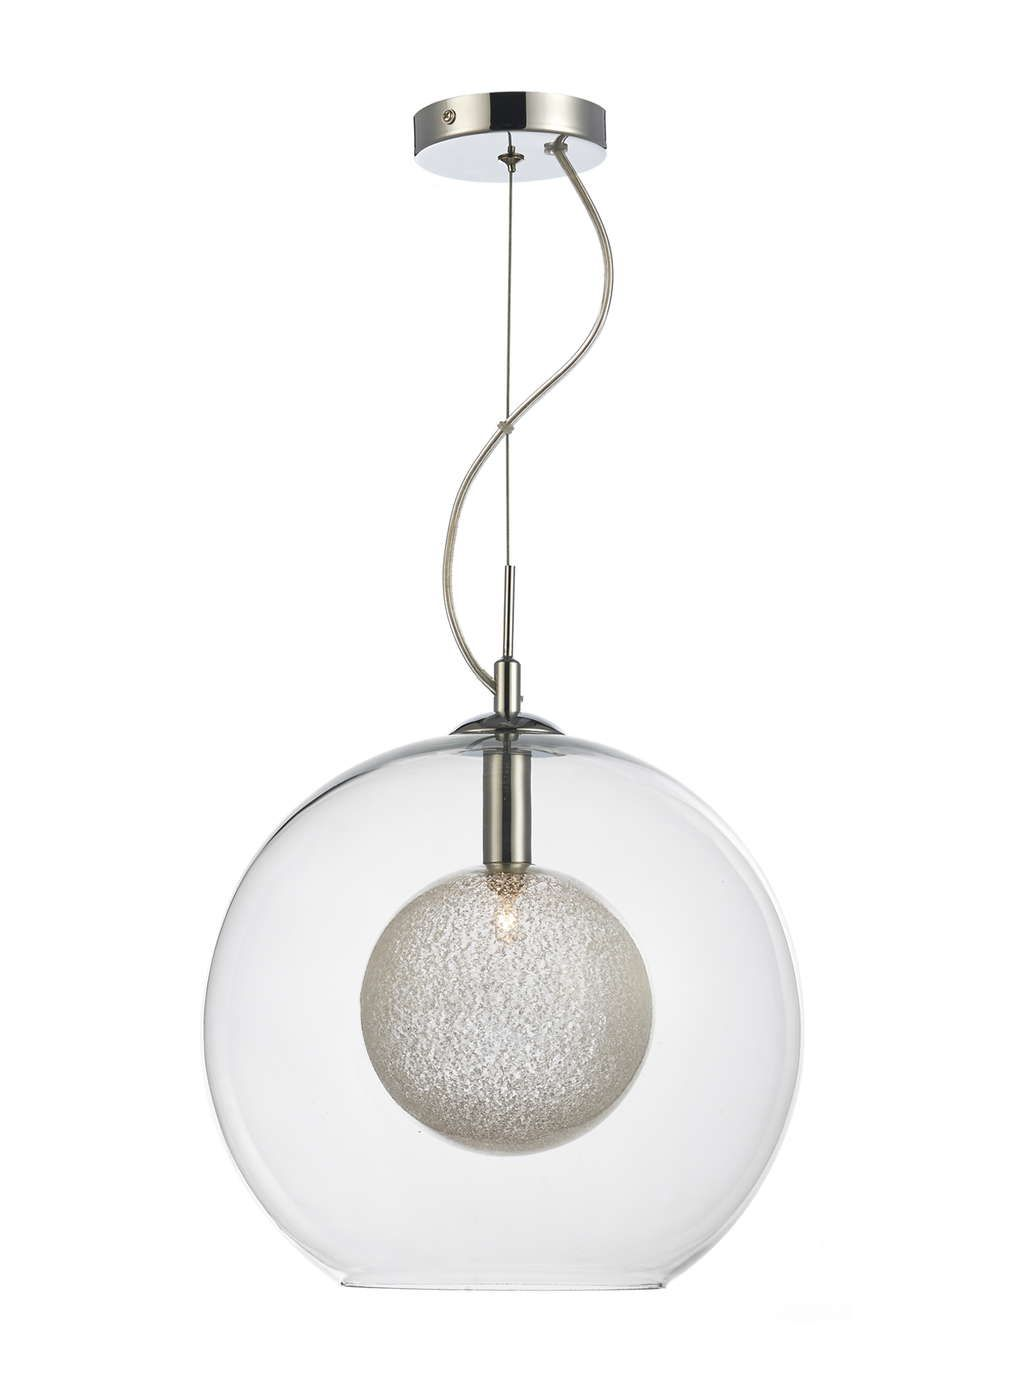 Clear claudia pendant ceiling light bhs decorating ideas clear claudia pendant ceiling light bhs mozeypictures Image collections